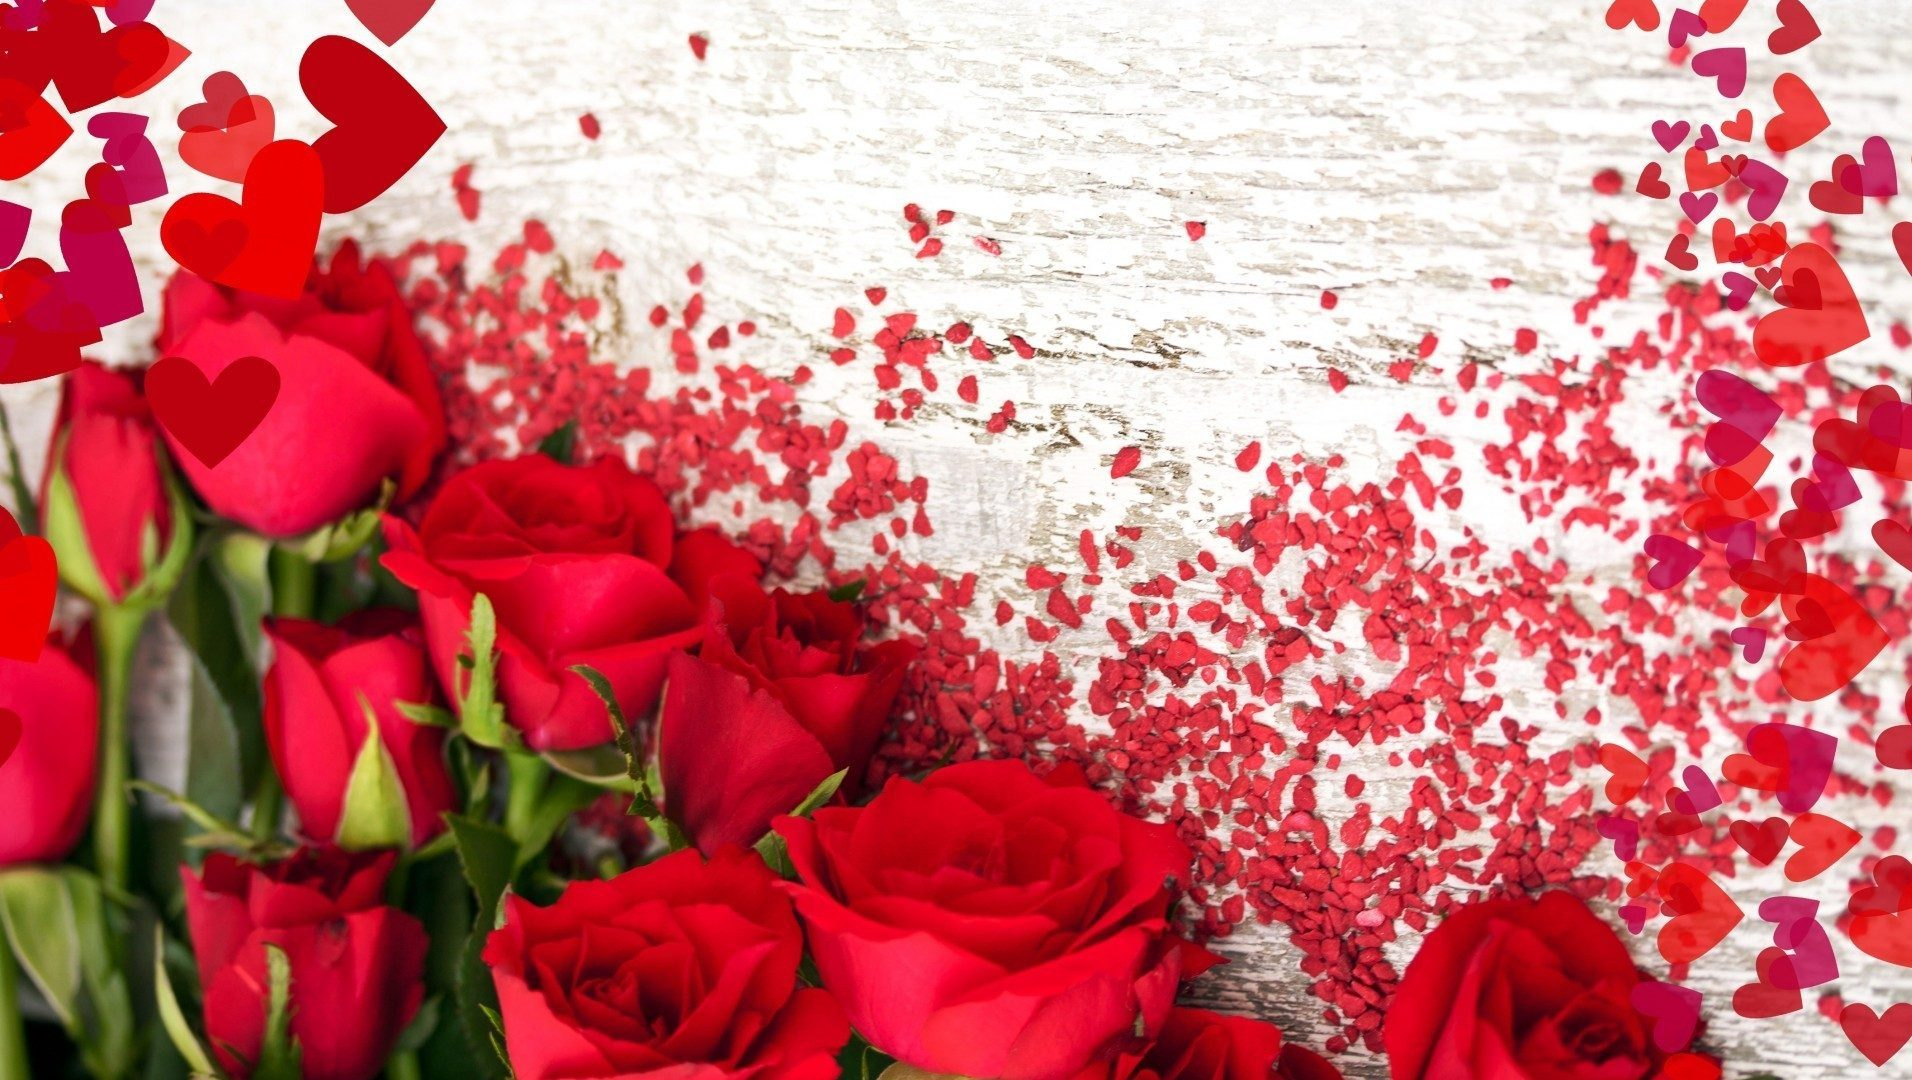 Flower Love Hearts Roses Red Rose Hd Quality 16 9 High - Love Roses And Hearts , HD Wallpaper & Backgrounds